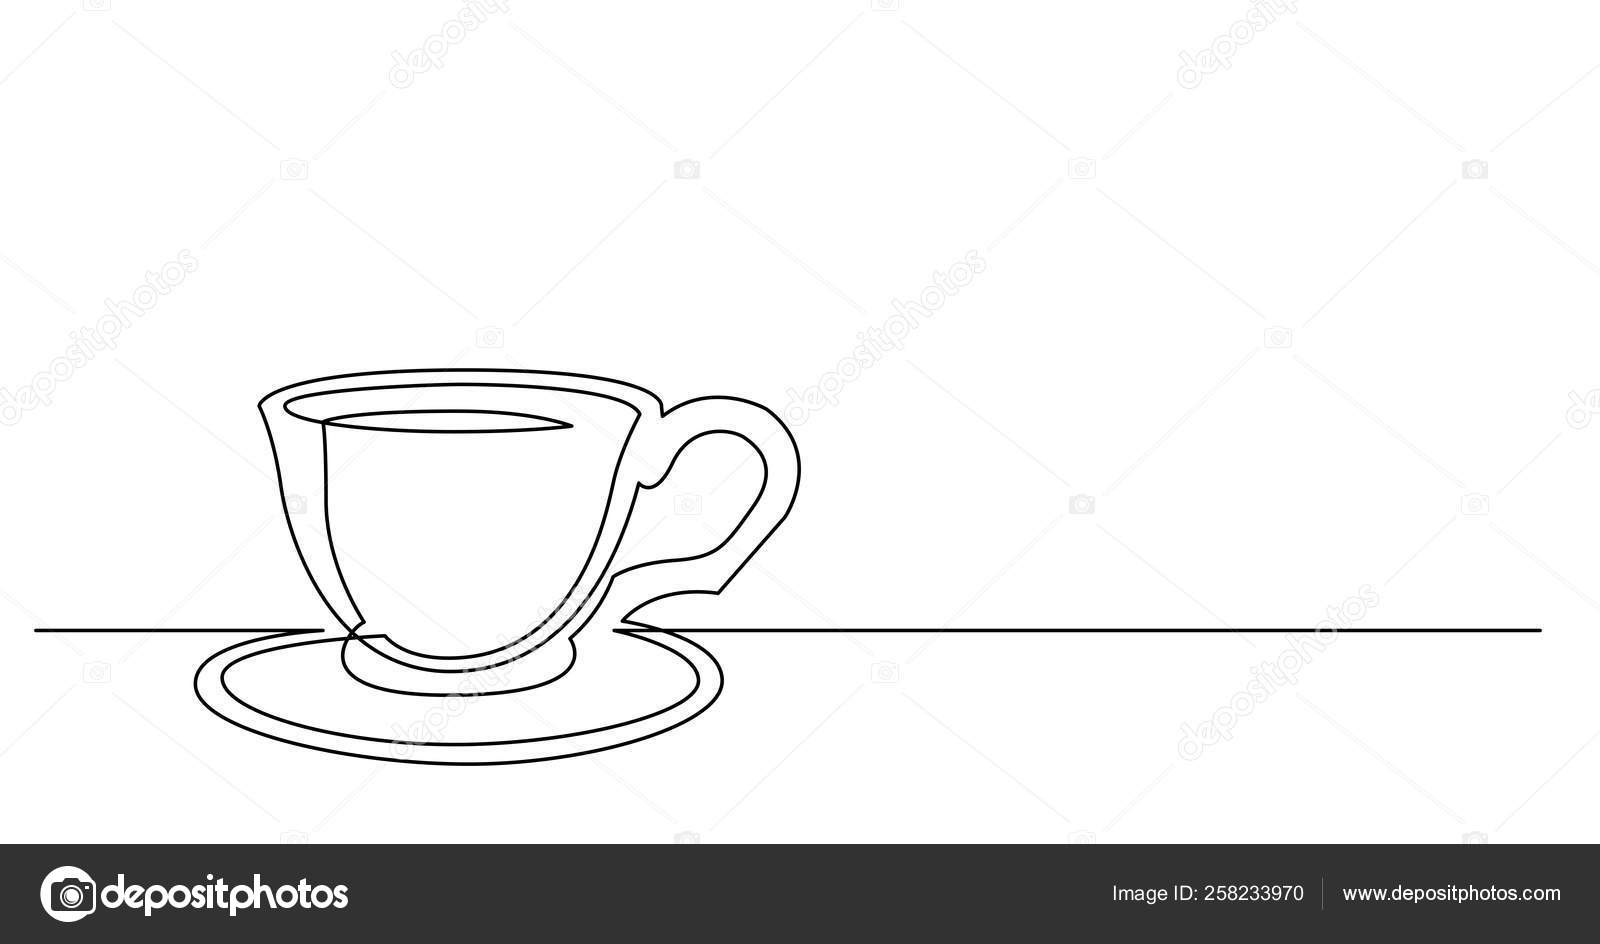 Continuous Line Drawing Of Cup Of Coffee With Saucer Stock Vector C One Line Man 258233970